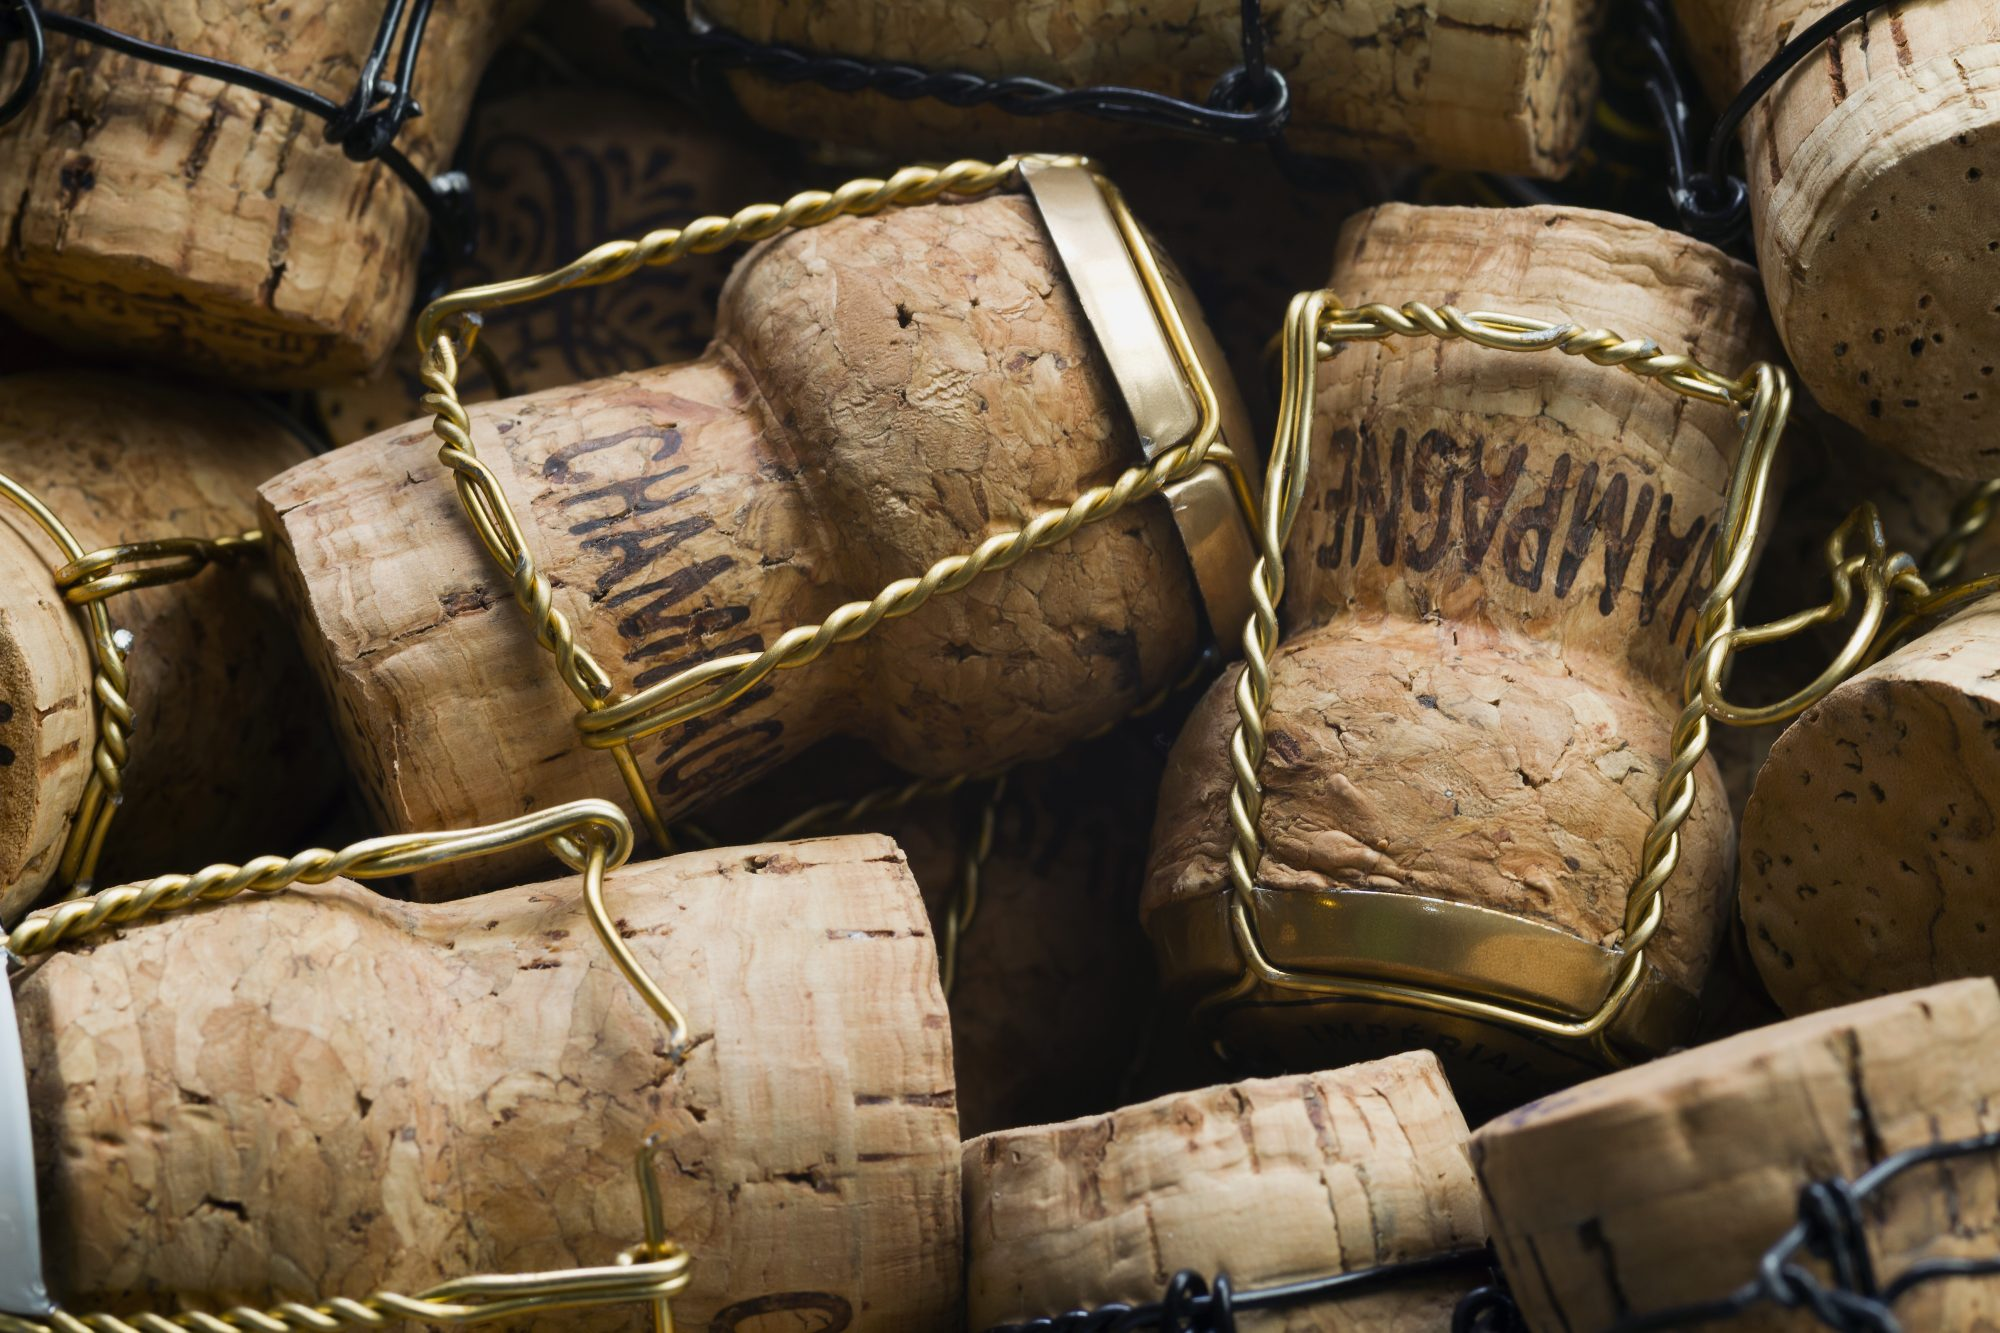 Champagne corks Getty 9/22/20